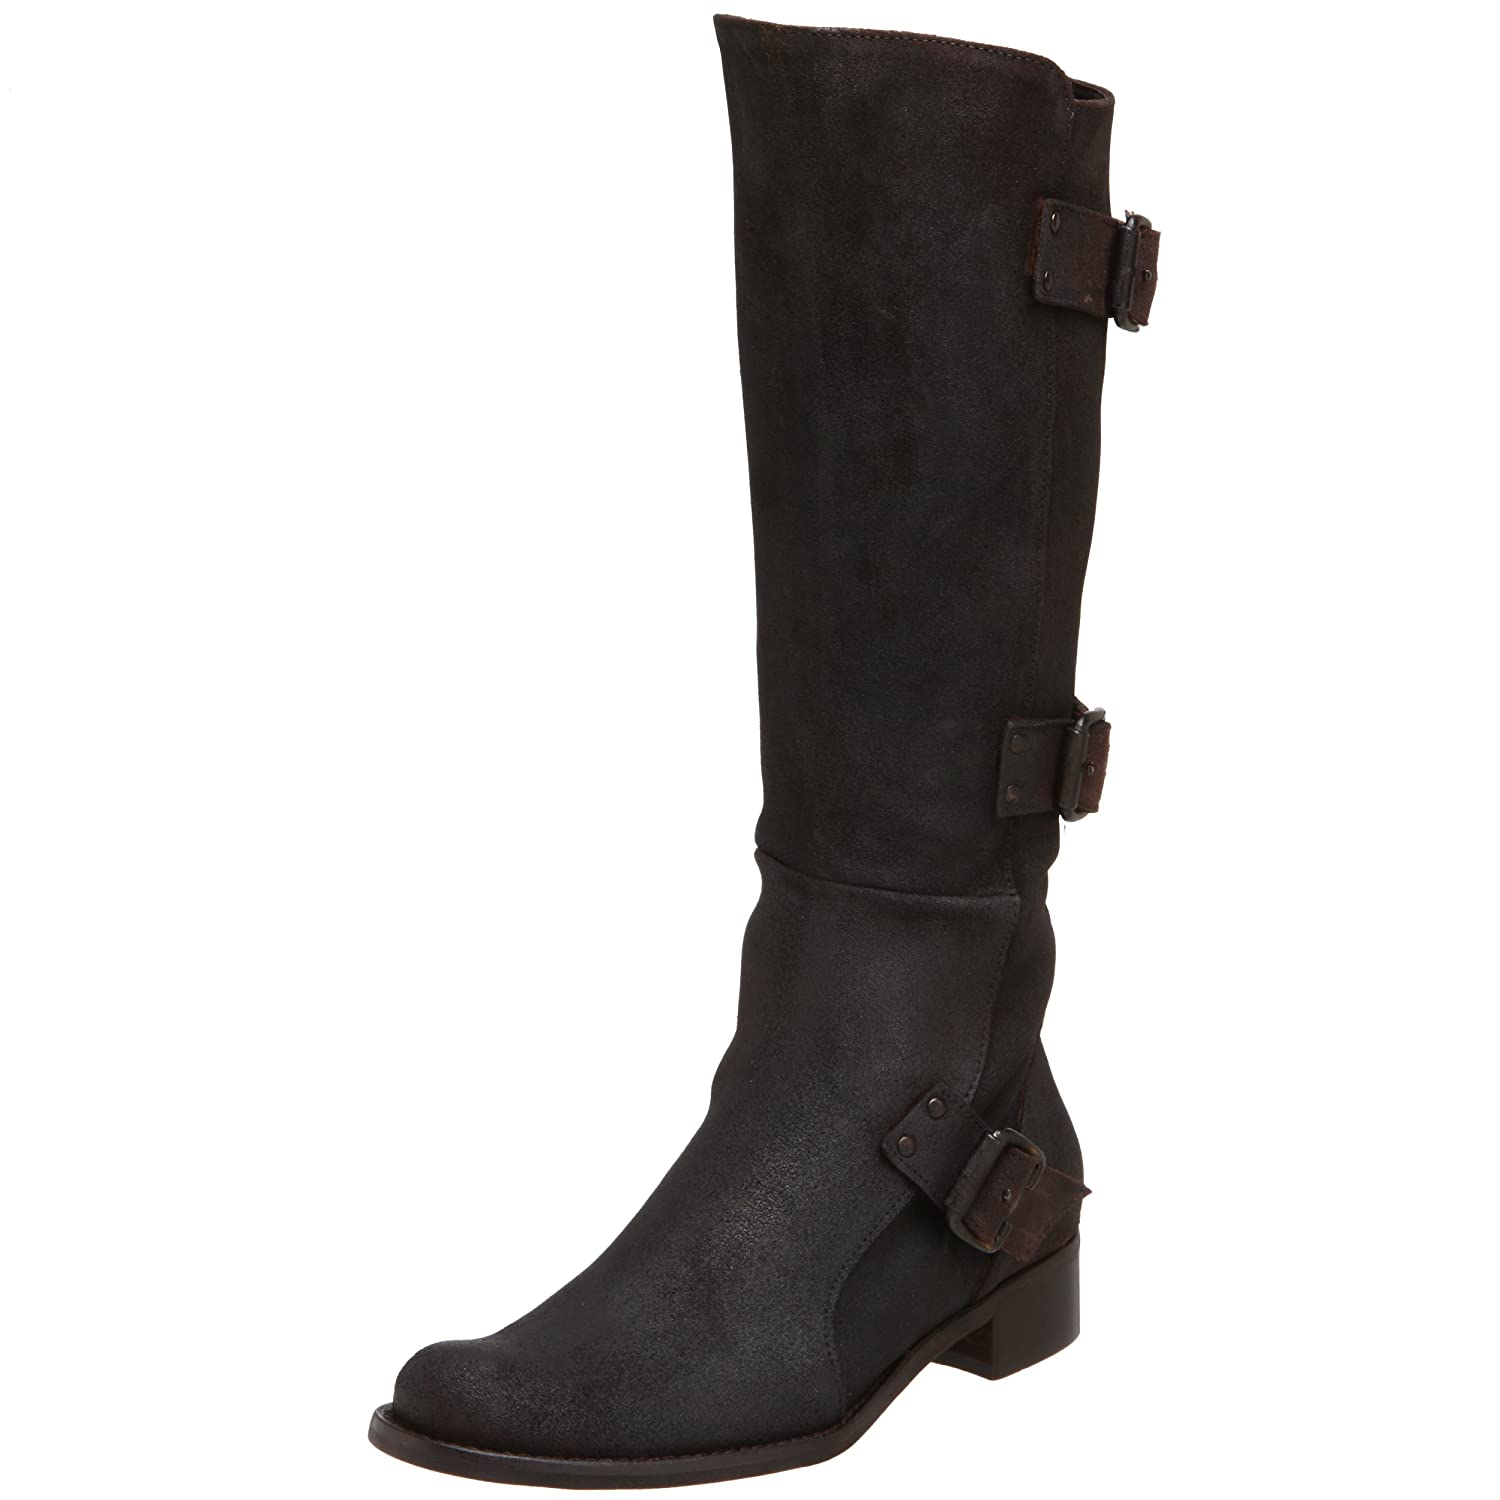 Charles David Women's Persue Boot - Free Overnight Shipping & Return Shipping: Endless.com :  david boot biker chic charles